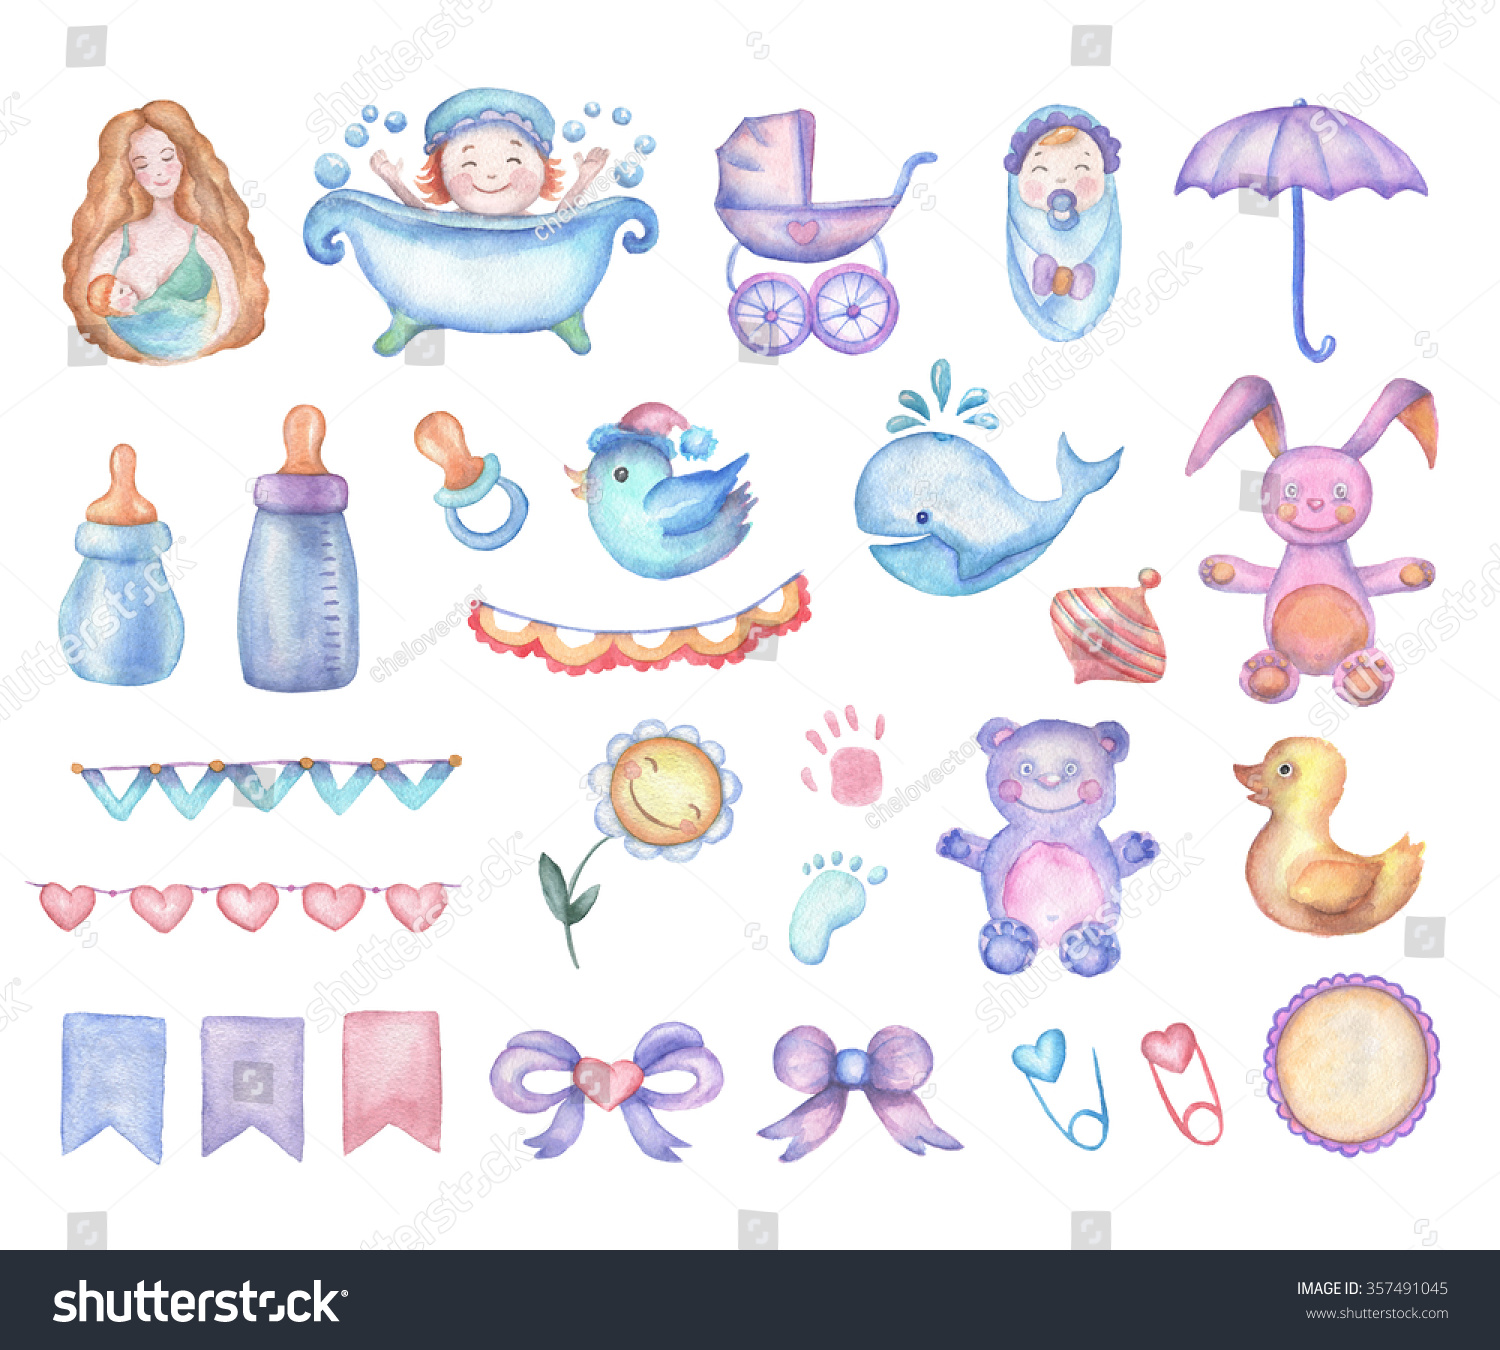 Watercolor Baby Shower Set Design Elements Stock ...